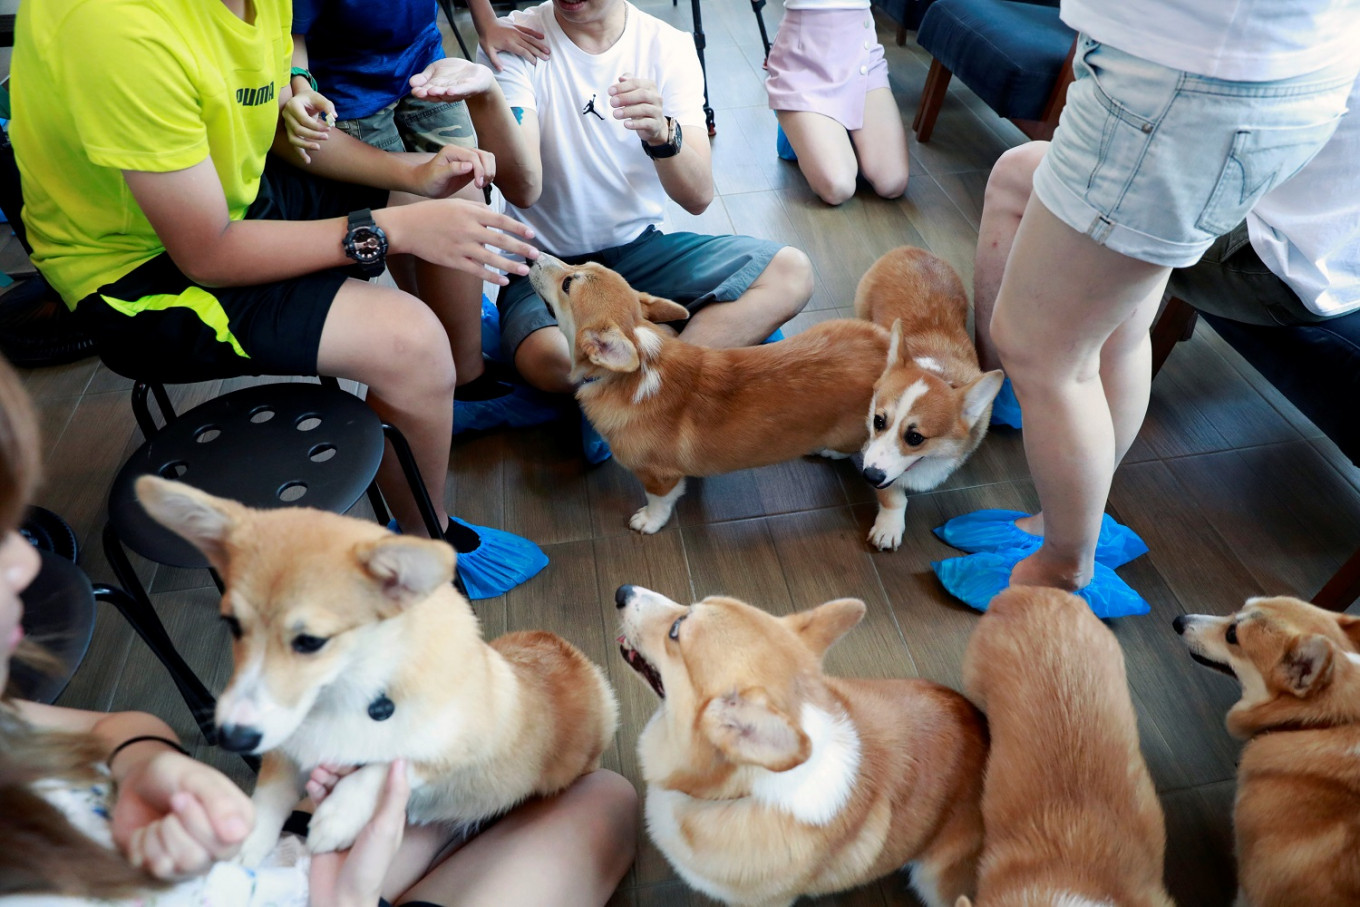 Cuteness overload: Corgis are king at this 'pawsome' cafe